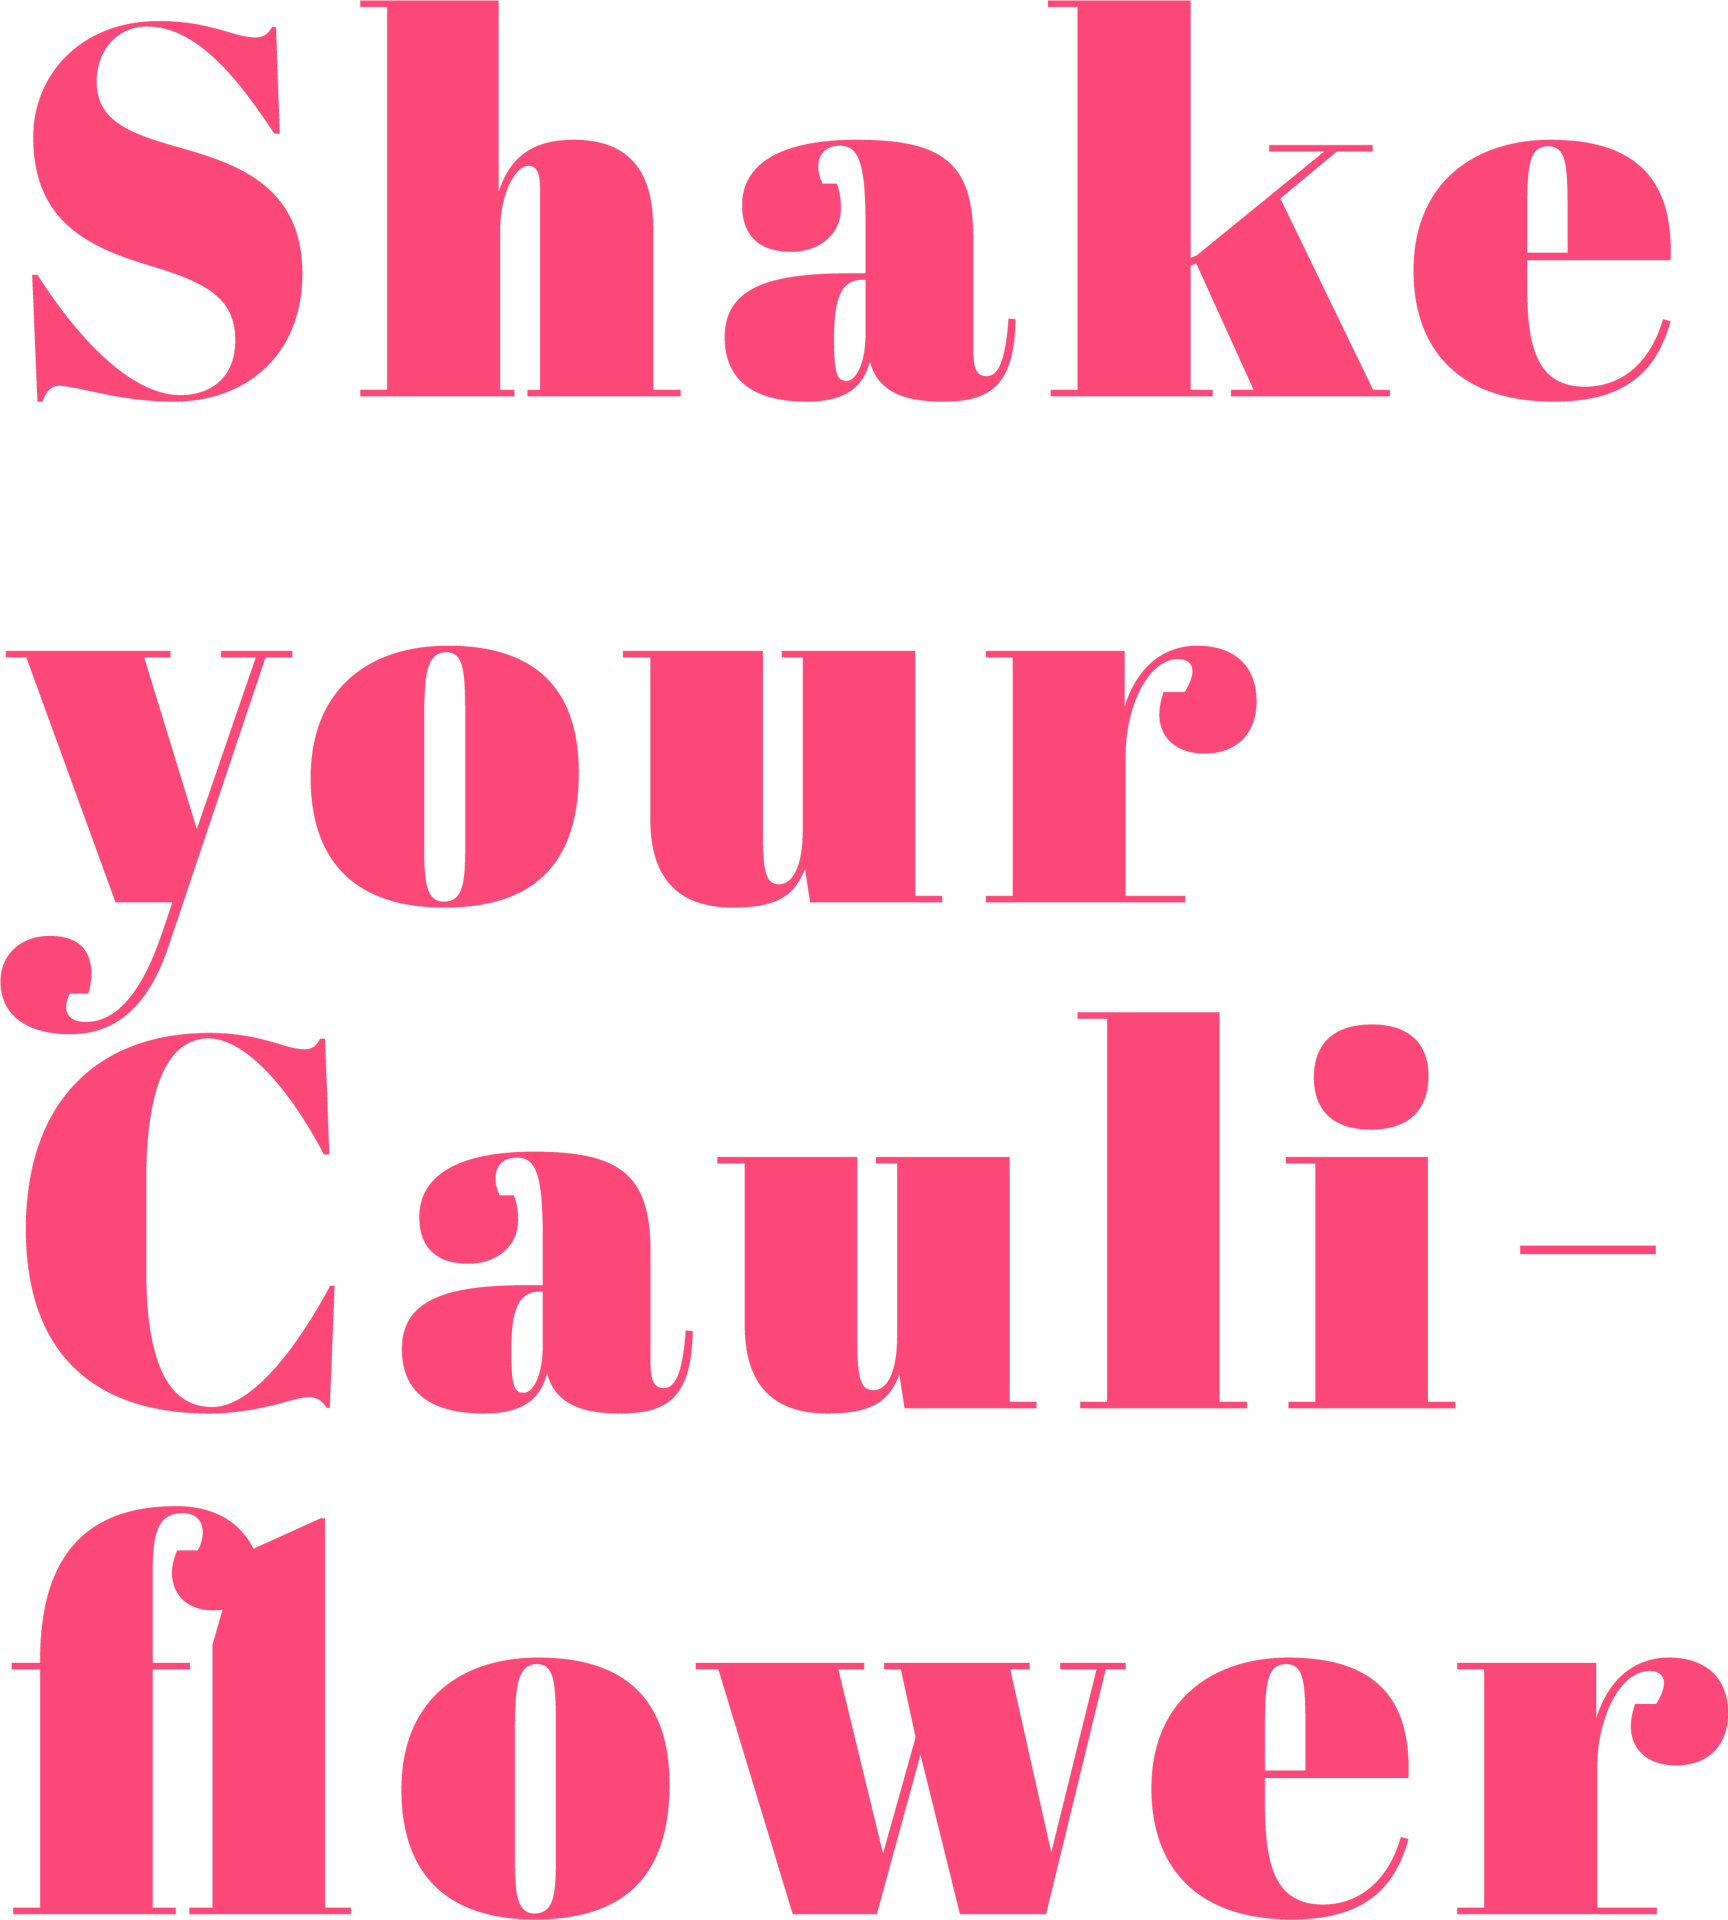 Shake Your Cauliflower